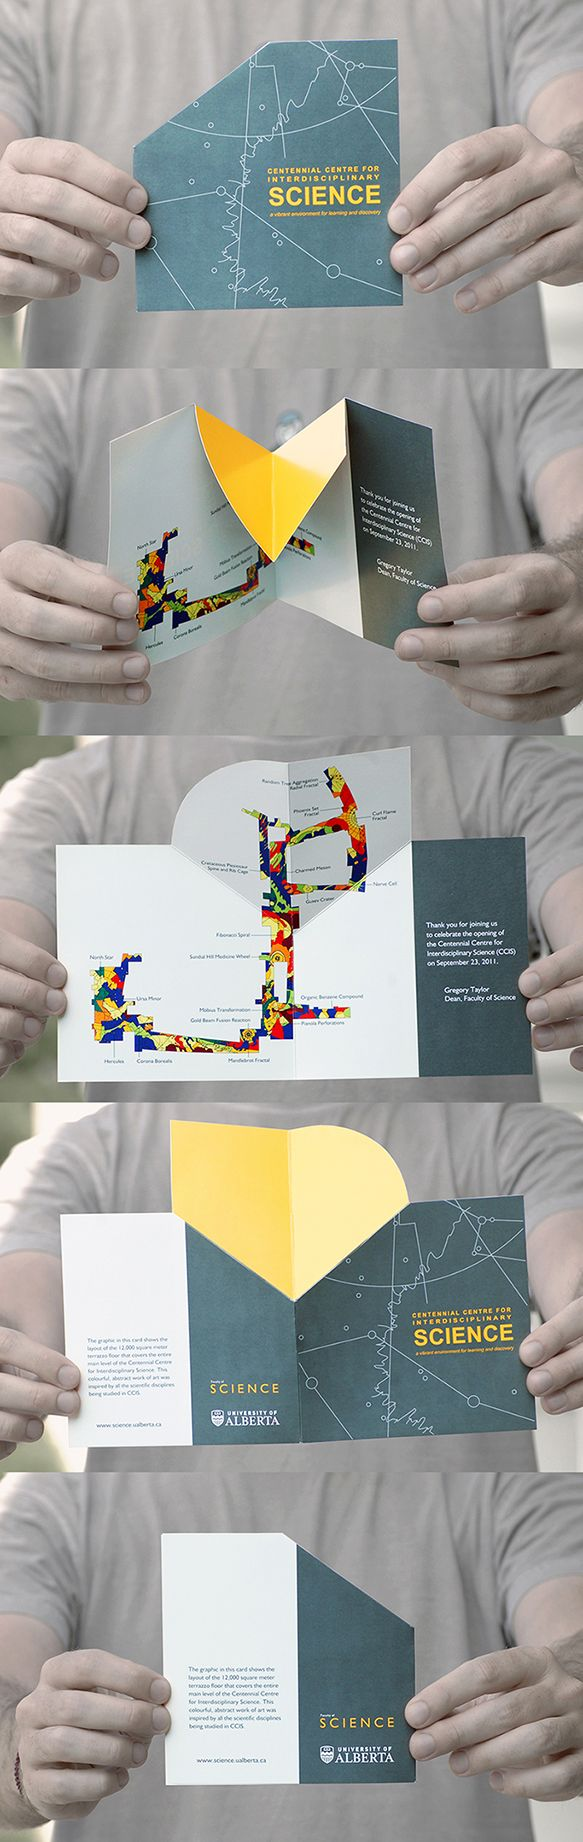 best 25 brochure ideas ideas on pinterest booklet